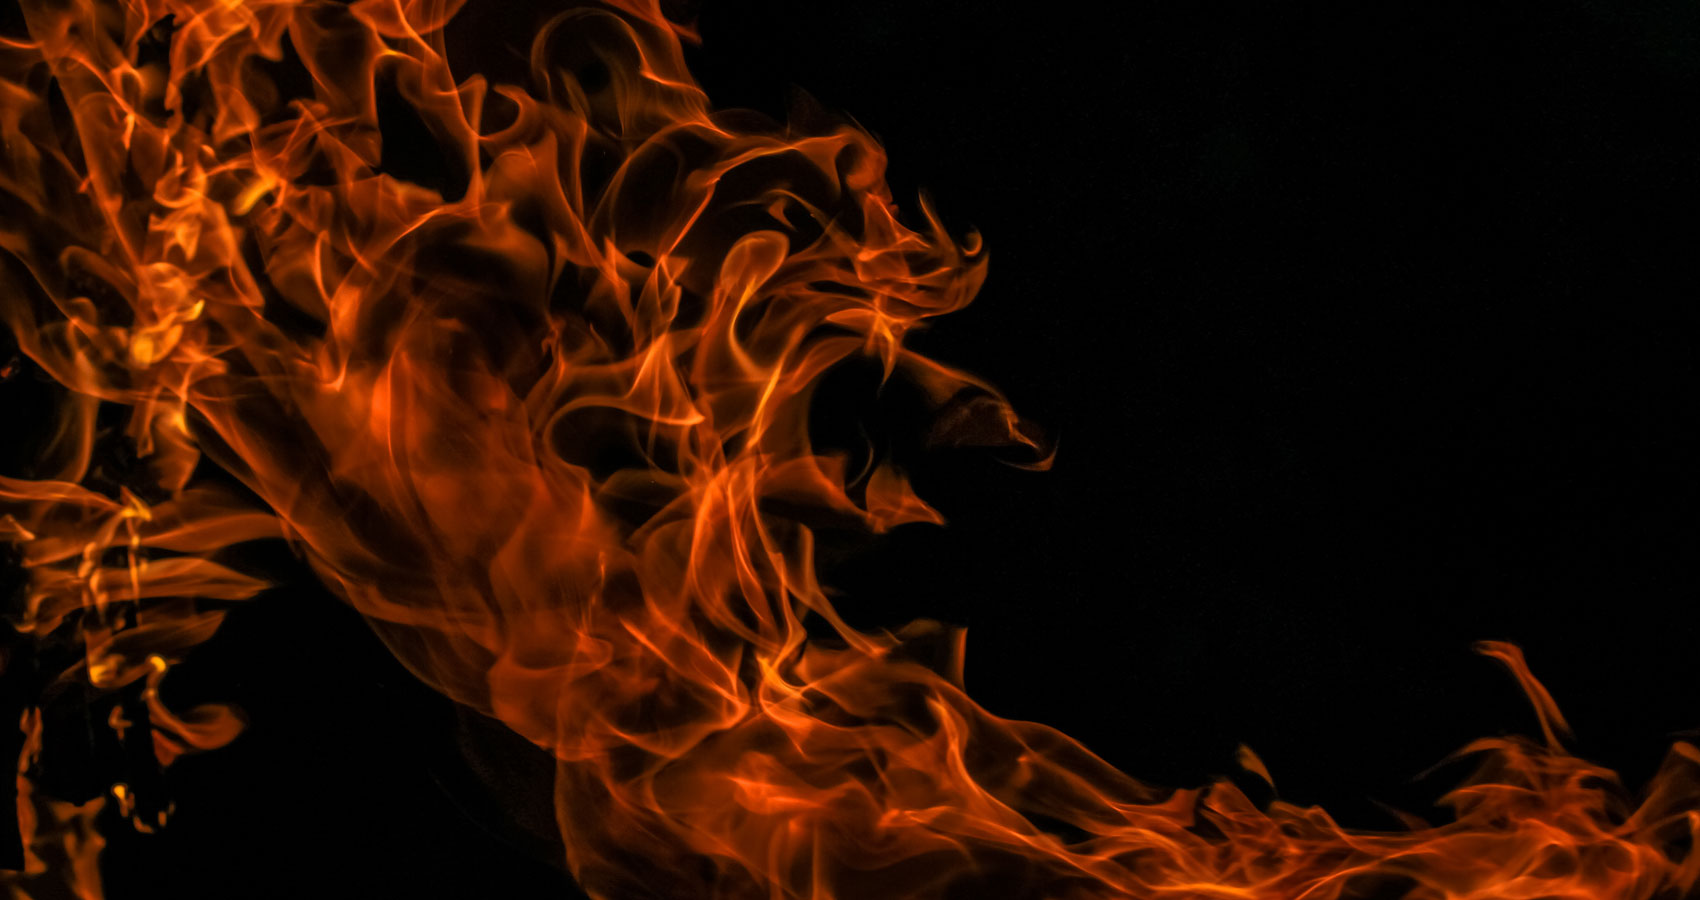 In The Glory Of Fire written by Nivedita Royat Spillwords.com